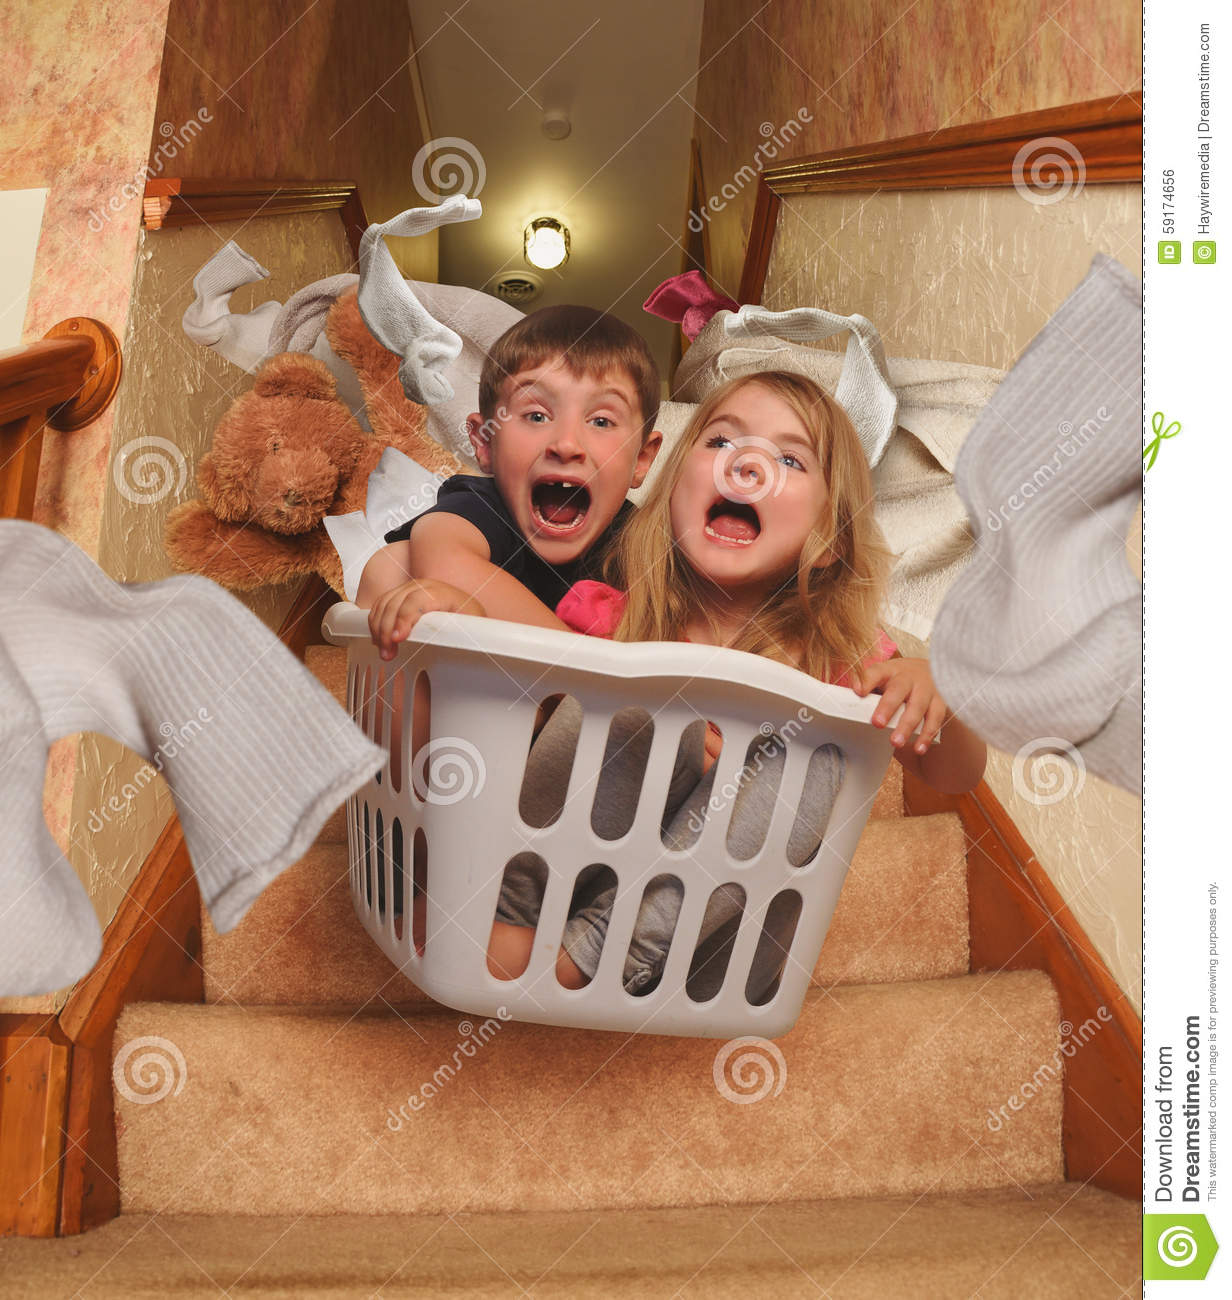 How To Read A House Plan Funny Kids Riding In Laundry Basket Downstairs Stock Photo